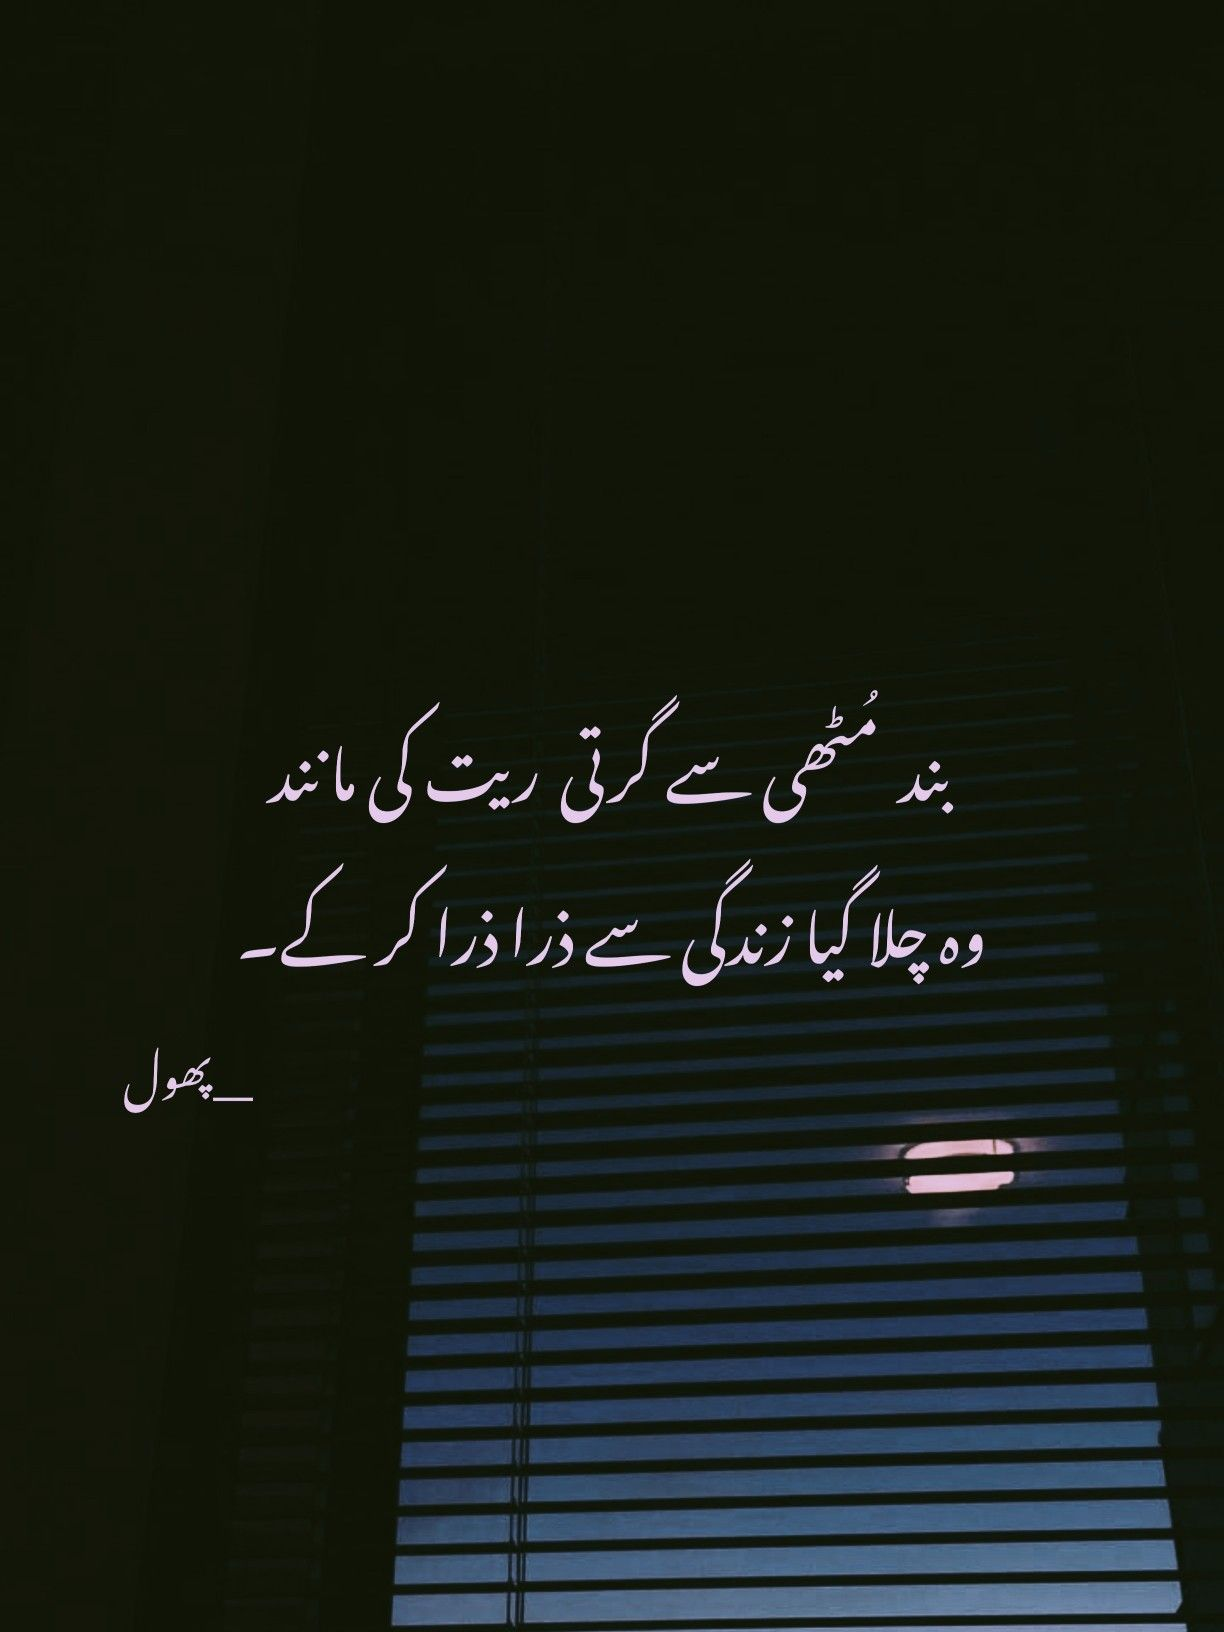 Pin by 𝓐𝓵𝓲 𝓢𝓪𝓺𝓲𝓫 🖤 on Her Thoughts ️ in 2020   Urdu poetry ...